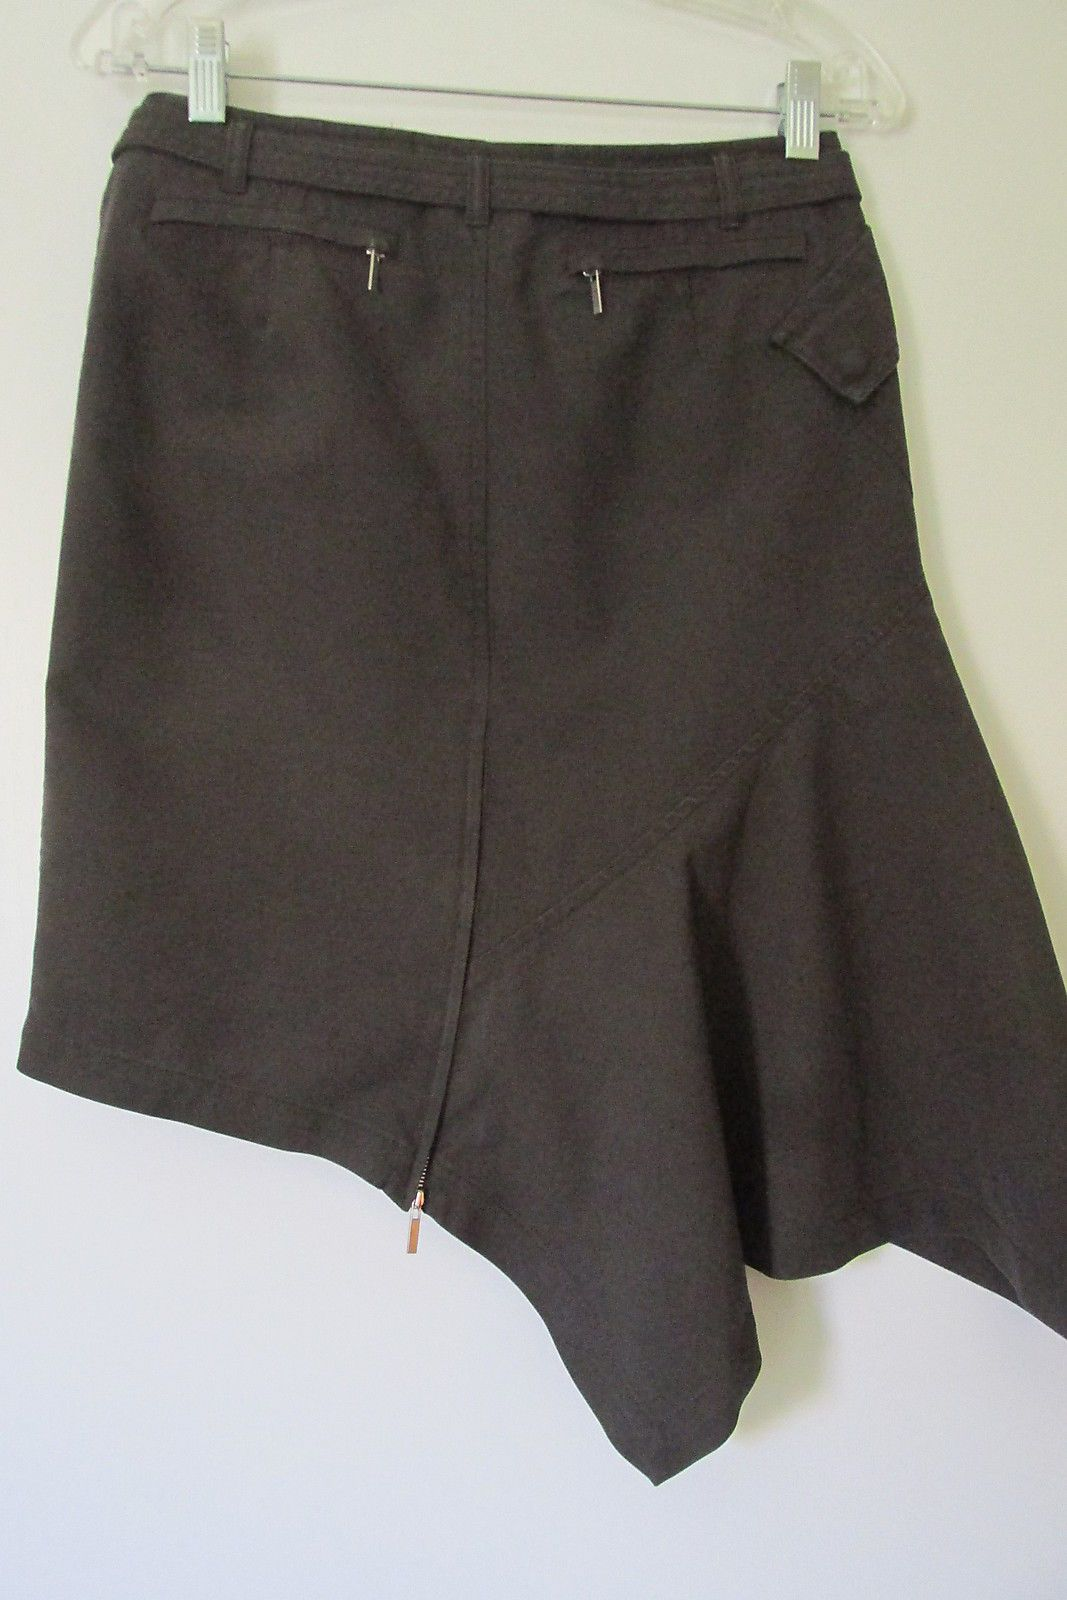 US $79.99 Pre-owned in Clothing, Shoes & Accessories, Women's Clothing, Skirts